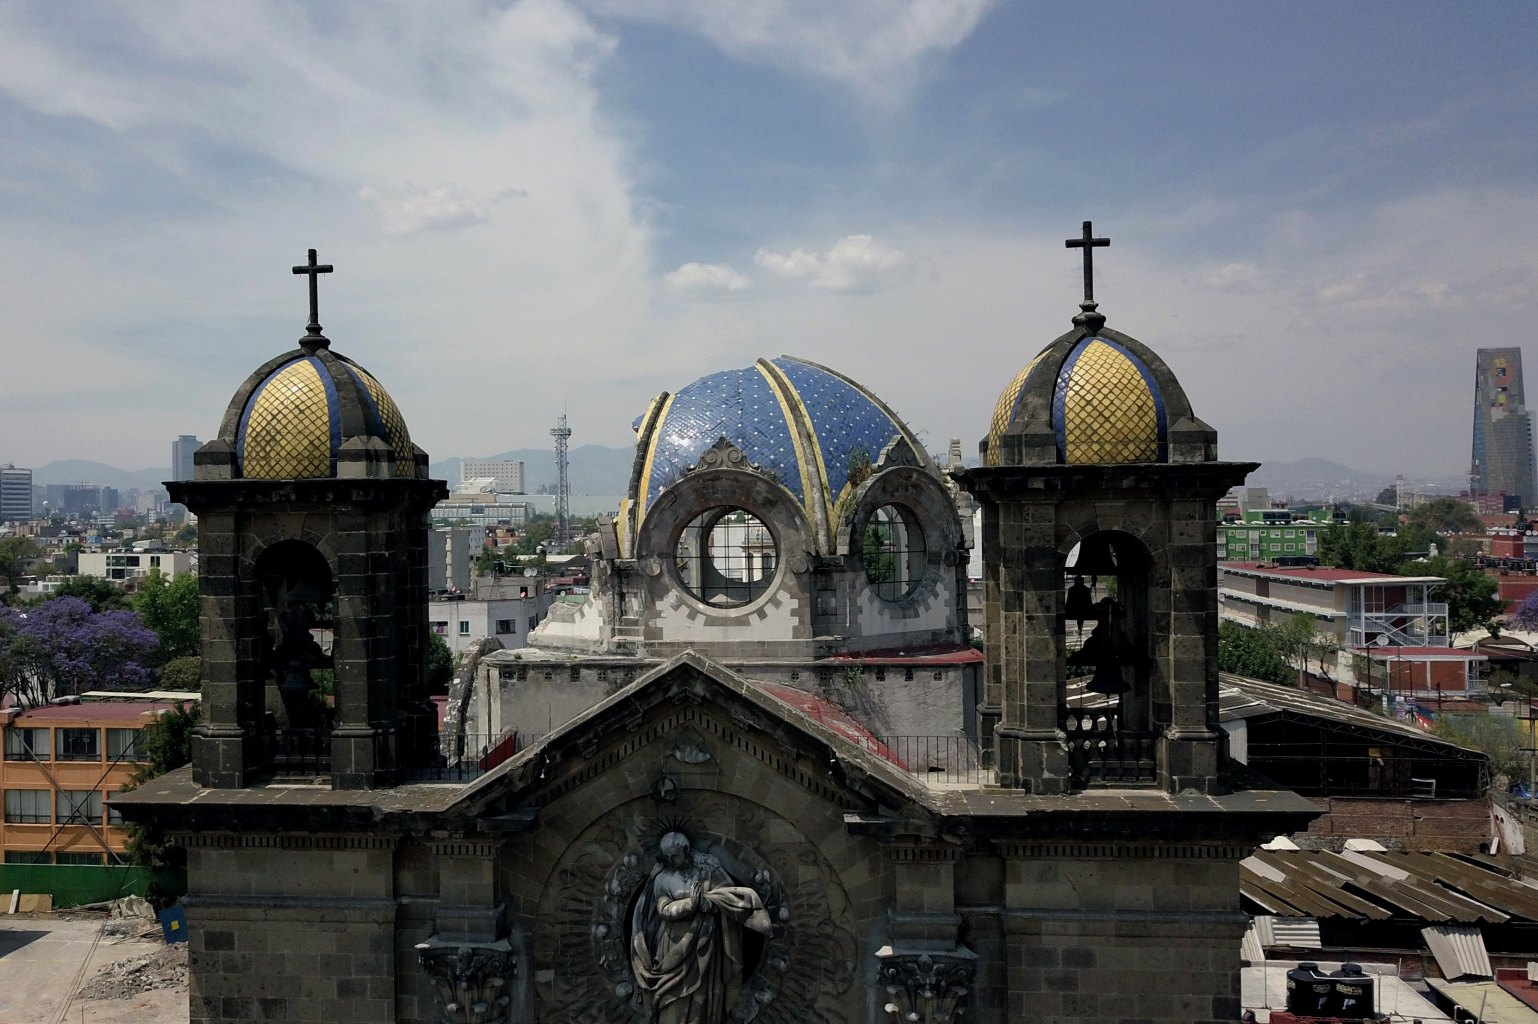 TOPSHOT - This aerial picture taken on March 18, 2018, shows a Catholic church which was damaged during the September 19, 2017 earthquake at Laredo street in Mexico City's Guerrero neighbourhood, undergoing reconstruction works. March 19, 2018 marks six months of a devastating quake. Mexican President Enrique Pena Nieto recently said that the two deadly earthquakes in September 2017 partially or totally damaged 184,000 homes, while 14,000 businesses and 16,000 schools were also affected. Reconstruction in central and southern Mexico following the quakes that killed a combined 465 people will require a $2.5 billion investment. / AFP PHOTO / Miguel TOVAR        (Photo credit should read MIGUEL TOVAR/AFP/Getty Images)